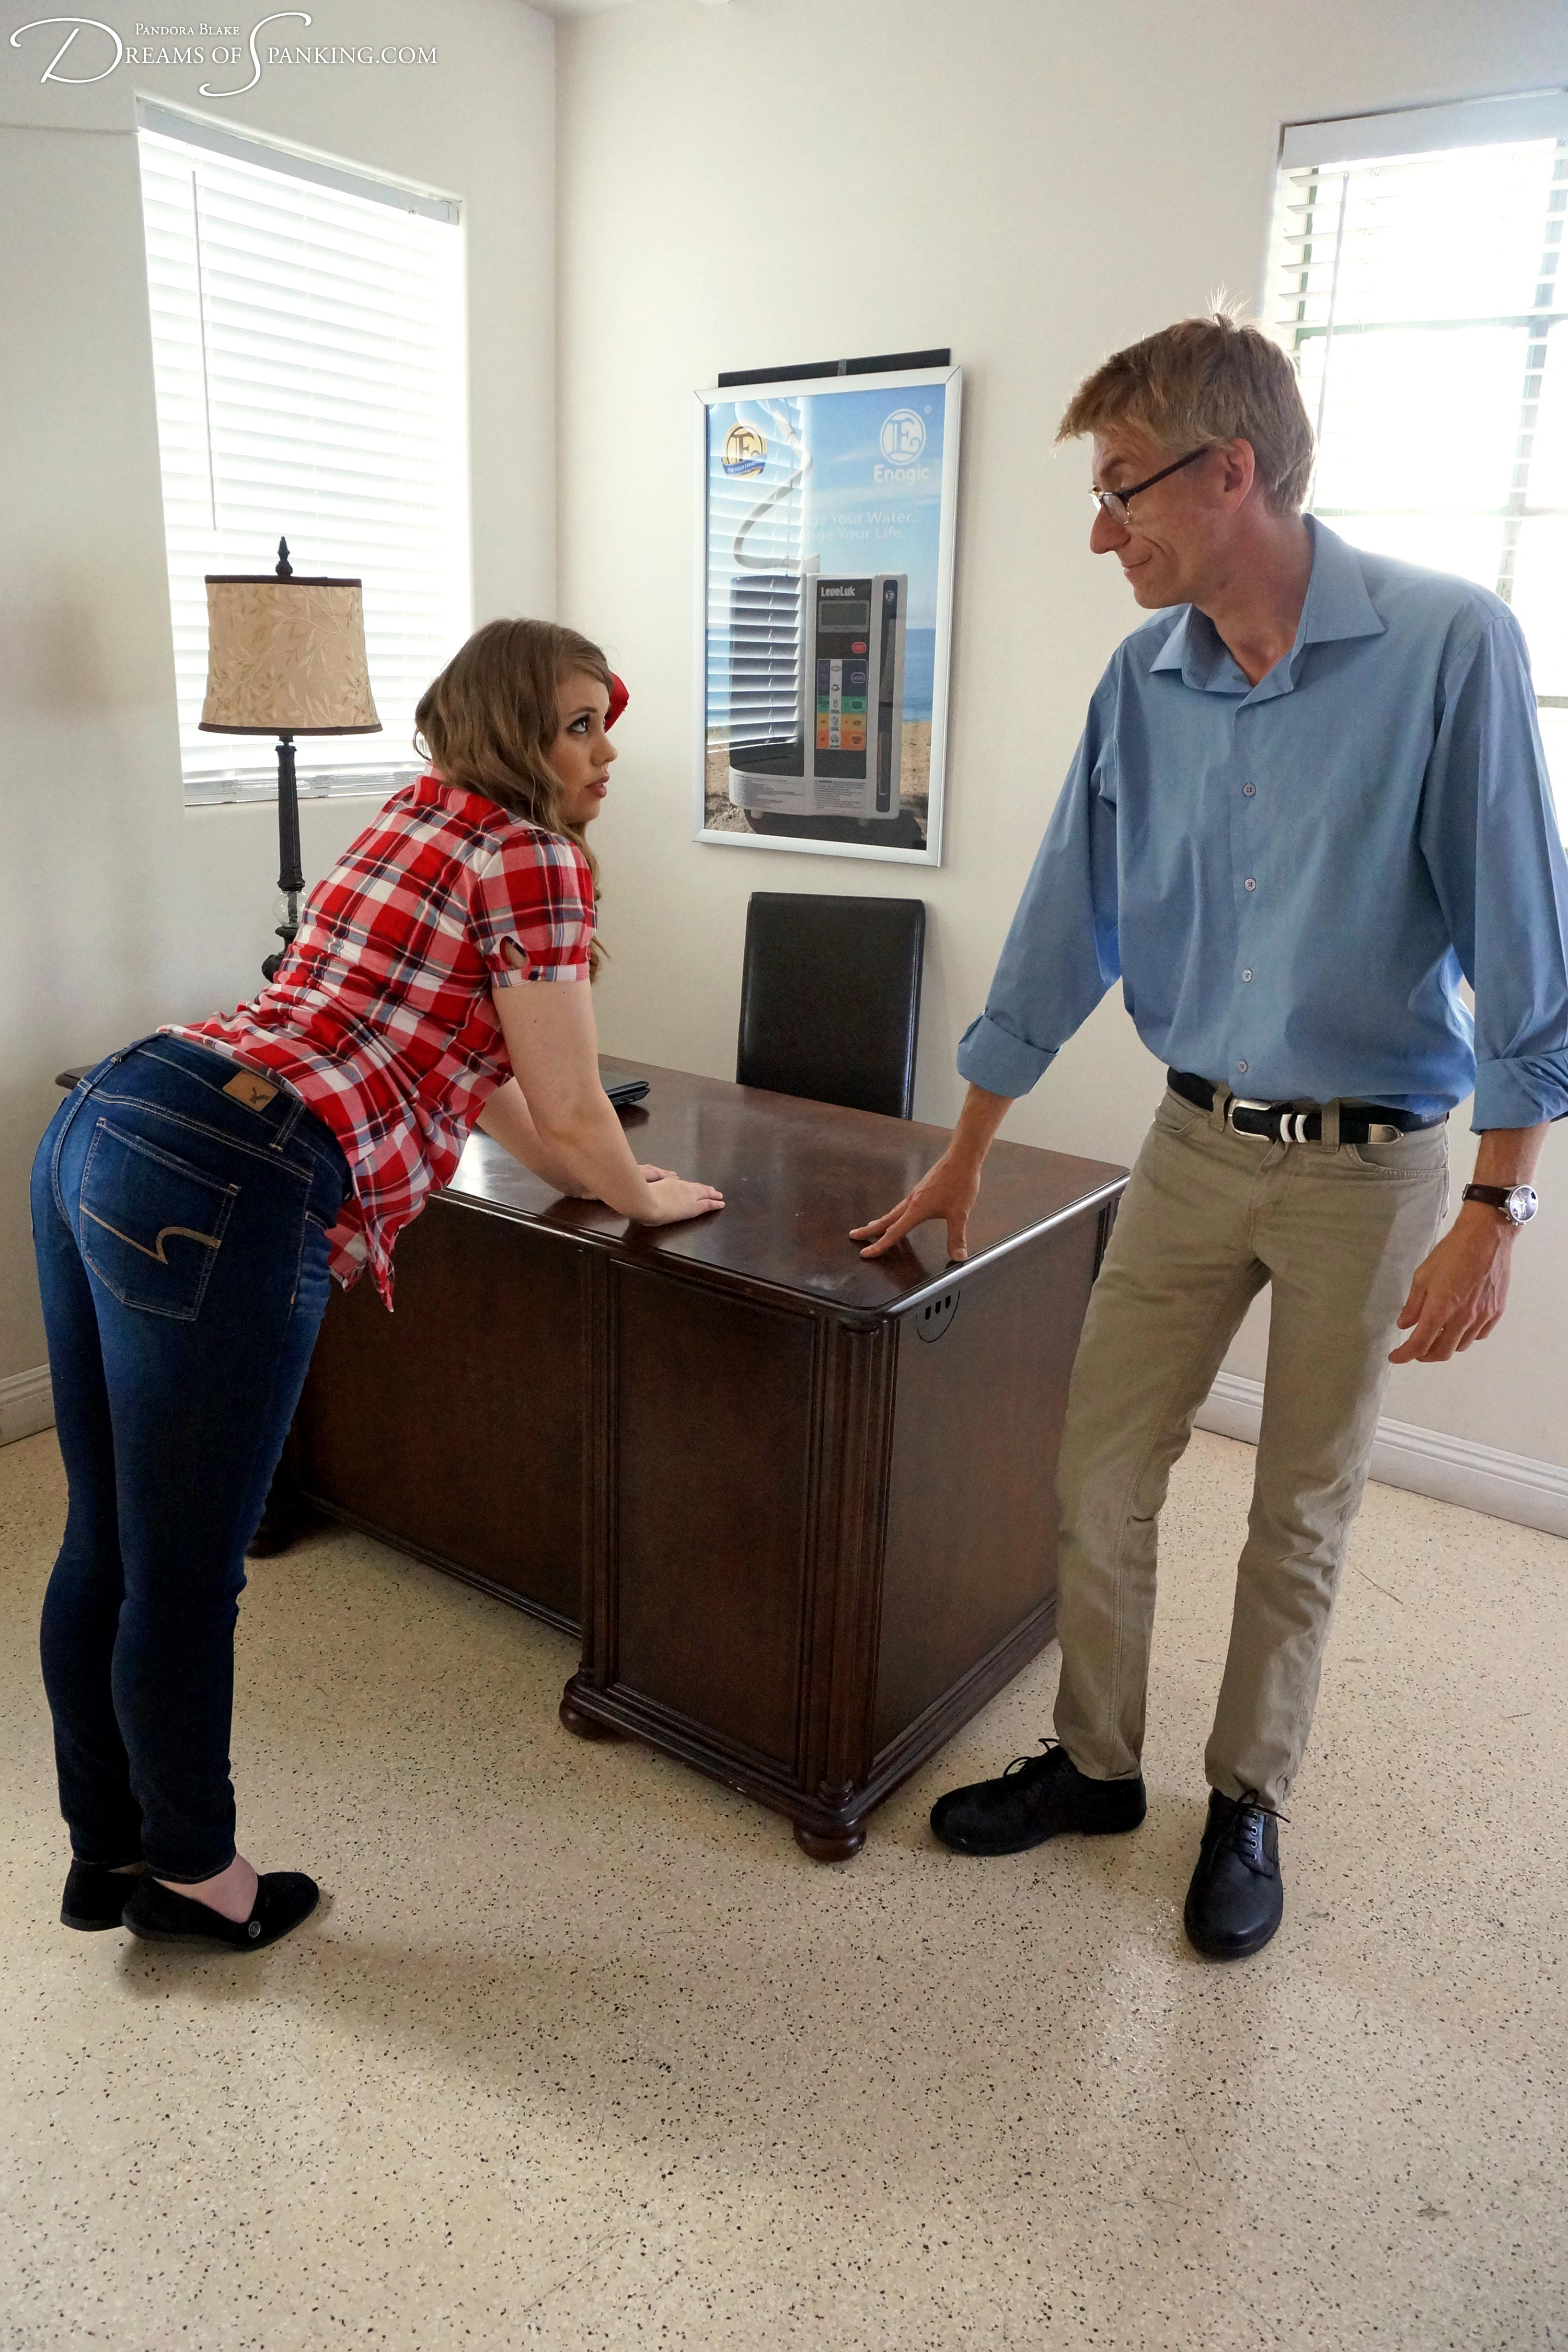 Naughty niece Christy Cutie spanked by uncle Paul Kennedy at Dreams of Spanking